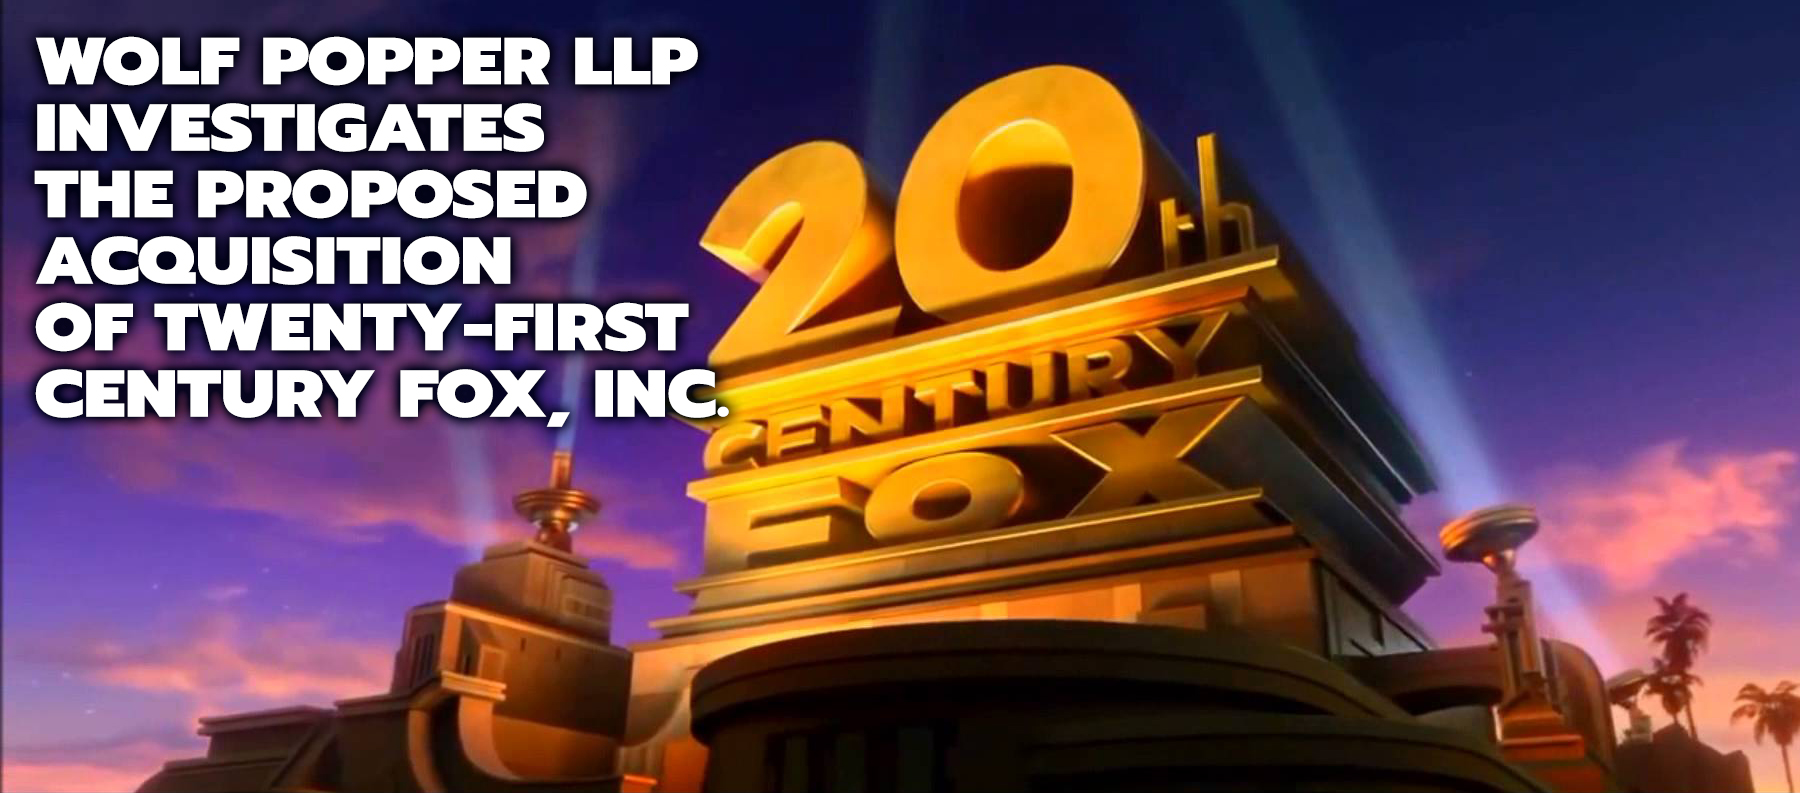 Wolf Popper LLP Investigates the Proposed Acquisition of Twenty-First Century Fox, Inc. by Walt Disney Company